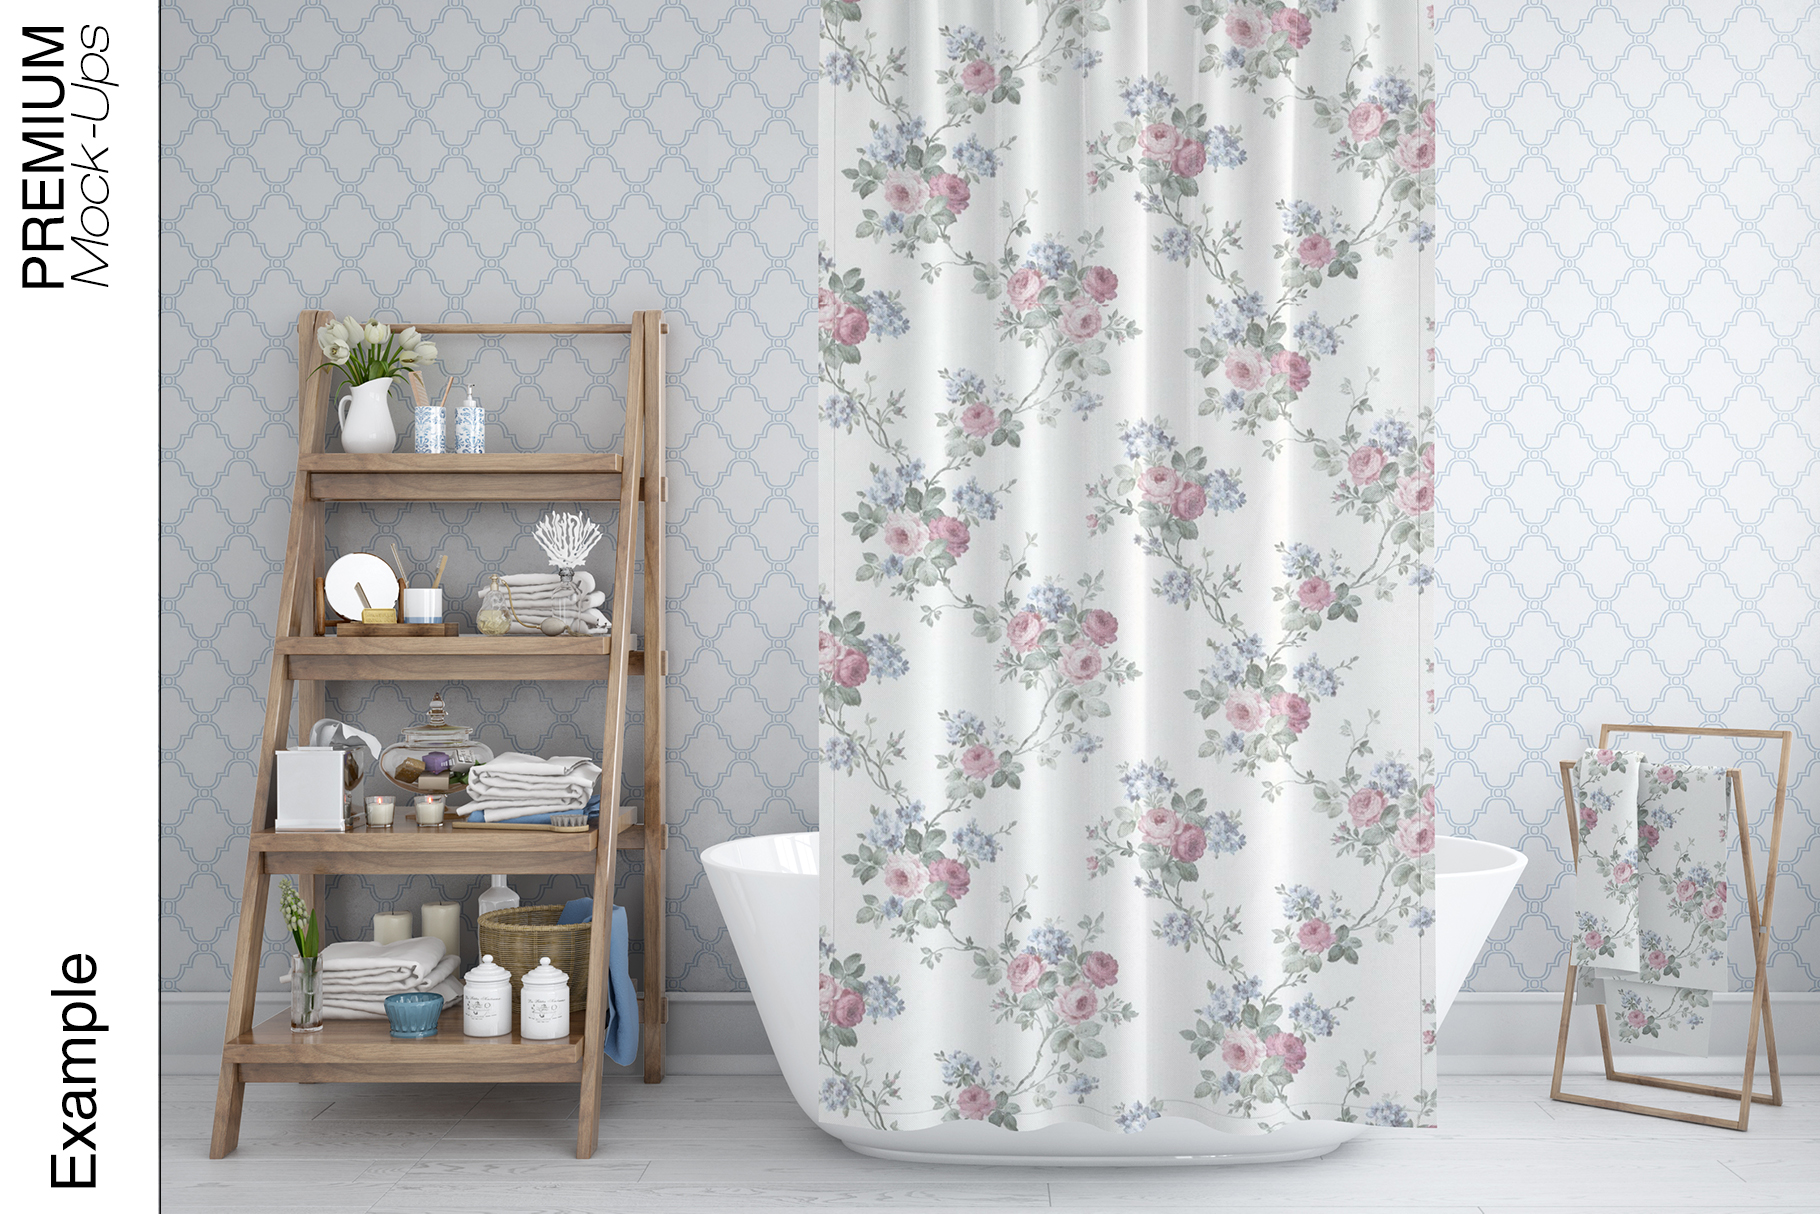 Bath Curtain Mockups example image 11